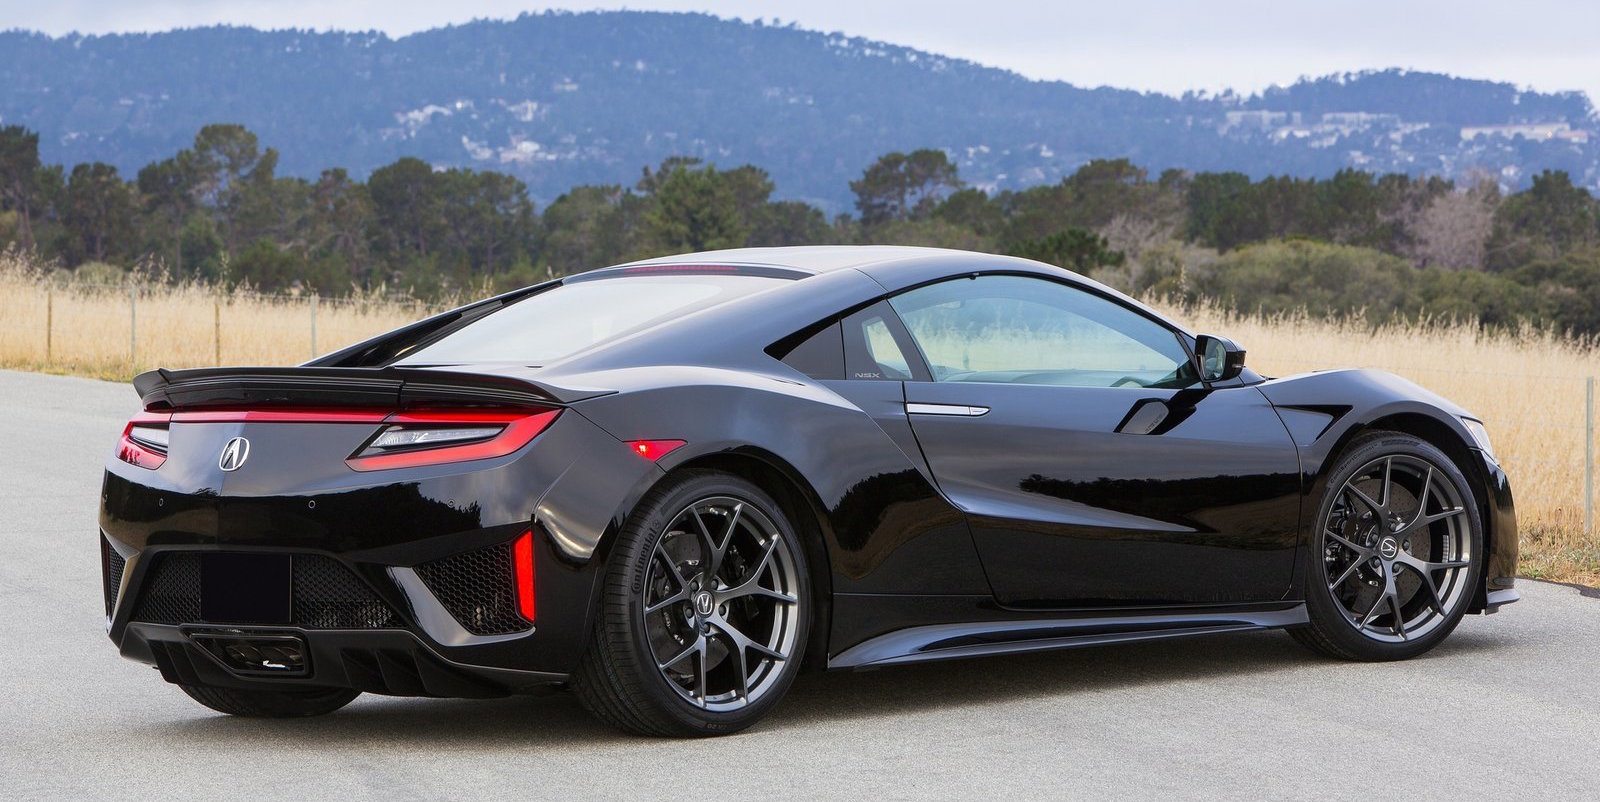 Camaro 2017 Gt >> Honda NSX to target buyers upgrading from Porsche 911, says project boss - photos | CarAdvice